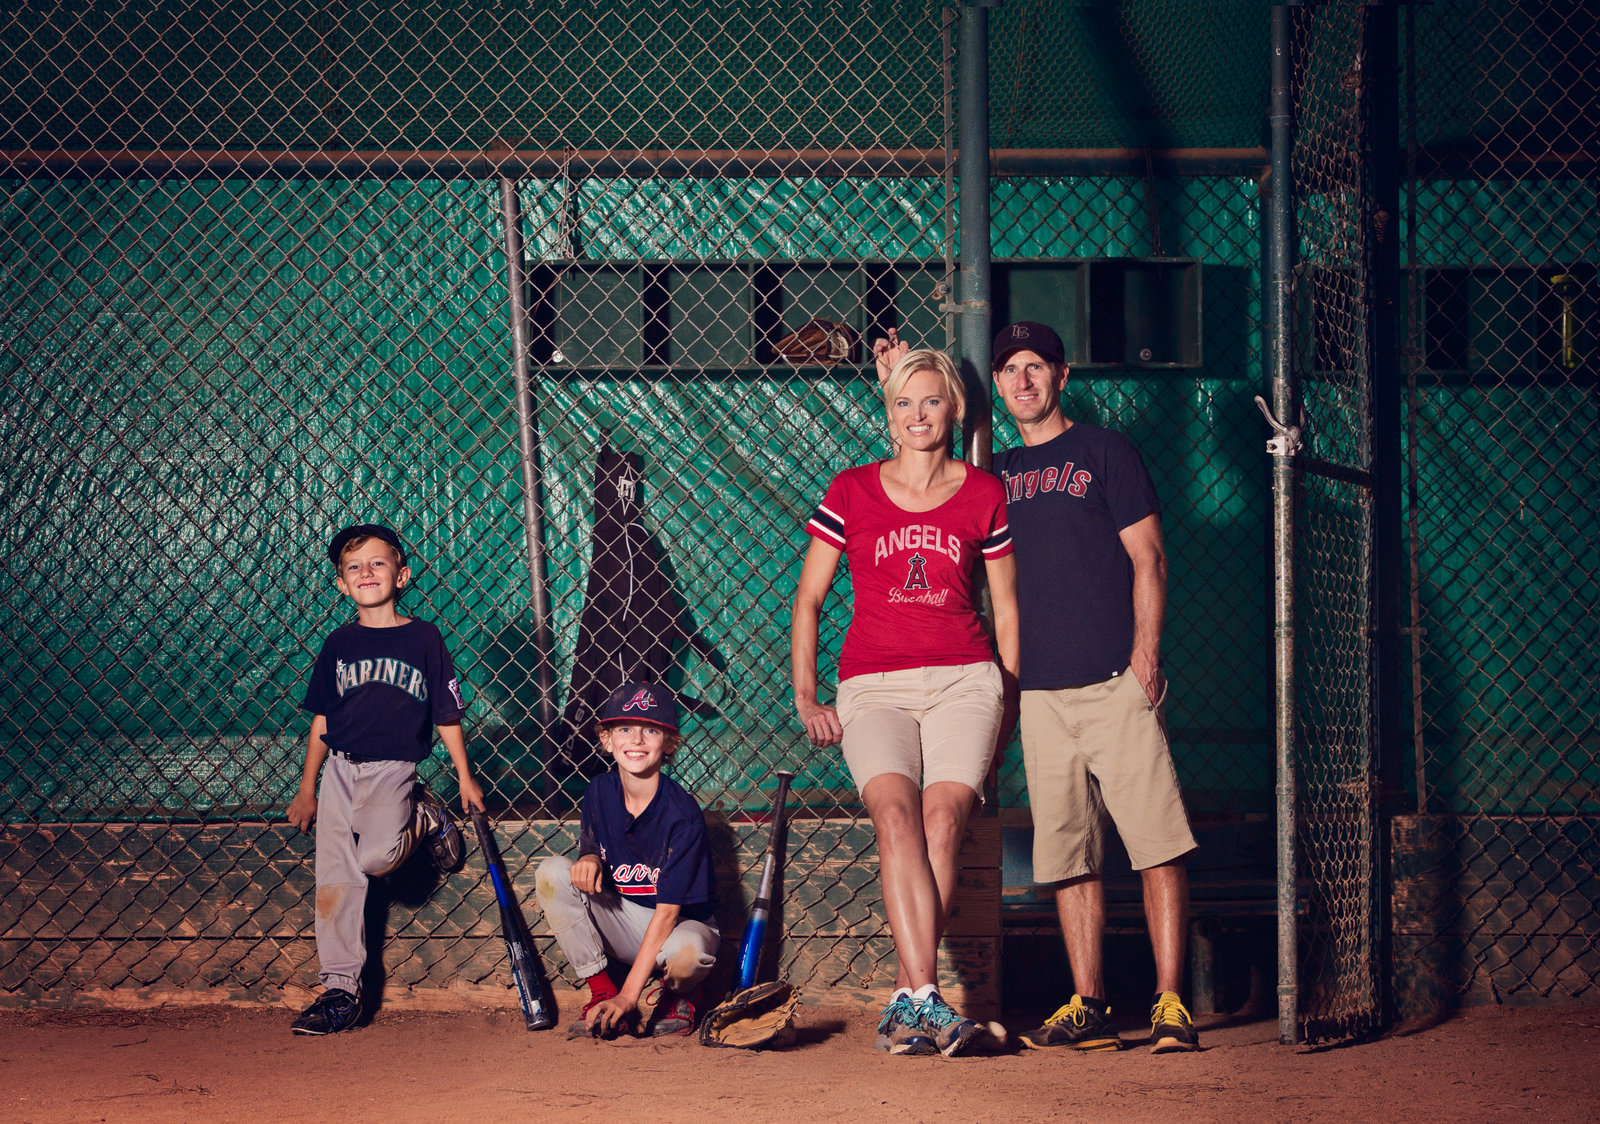 Baseball themed photography session with family in baseball gear with baseball bats